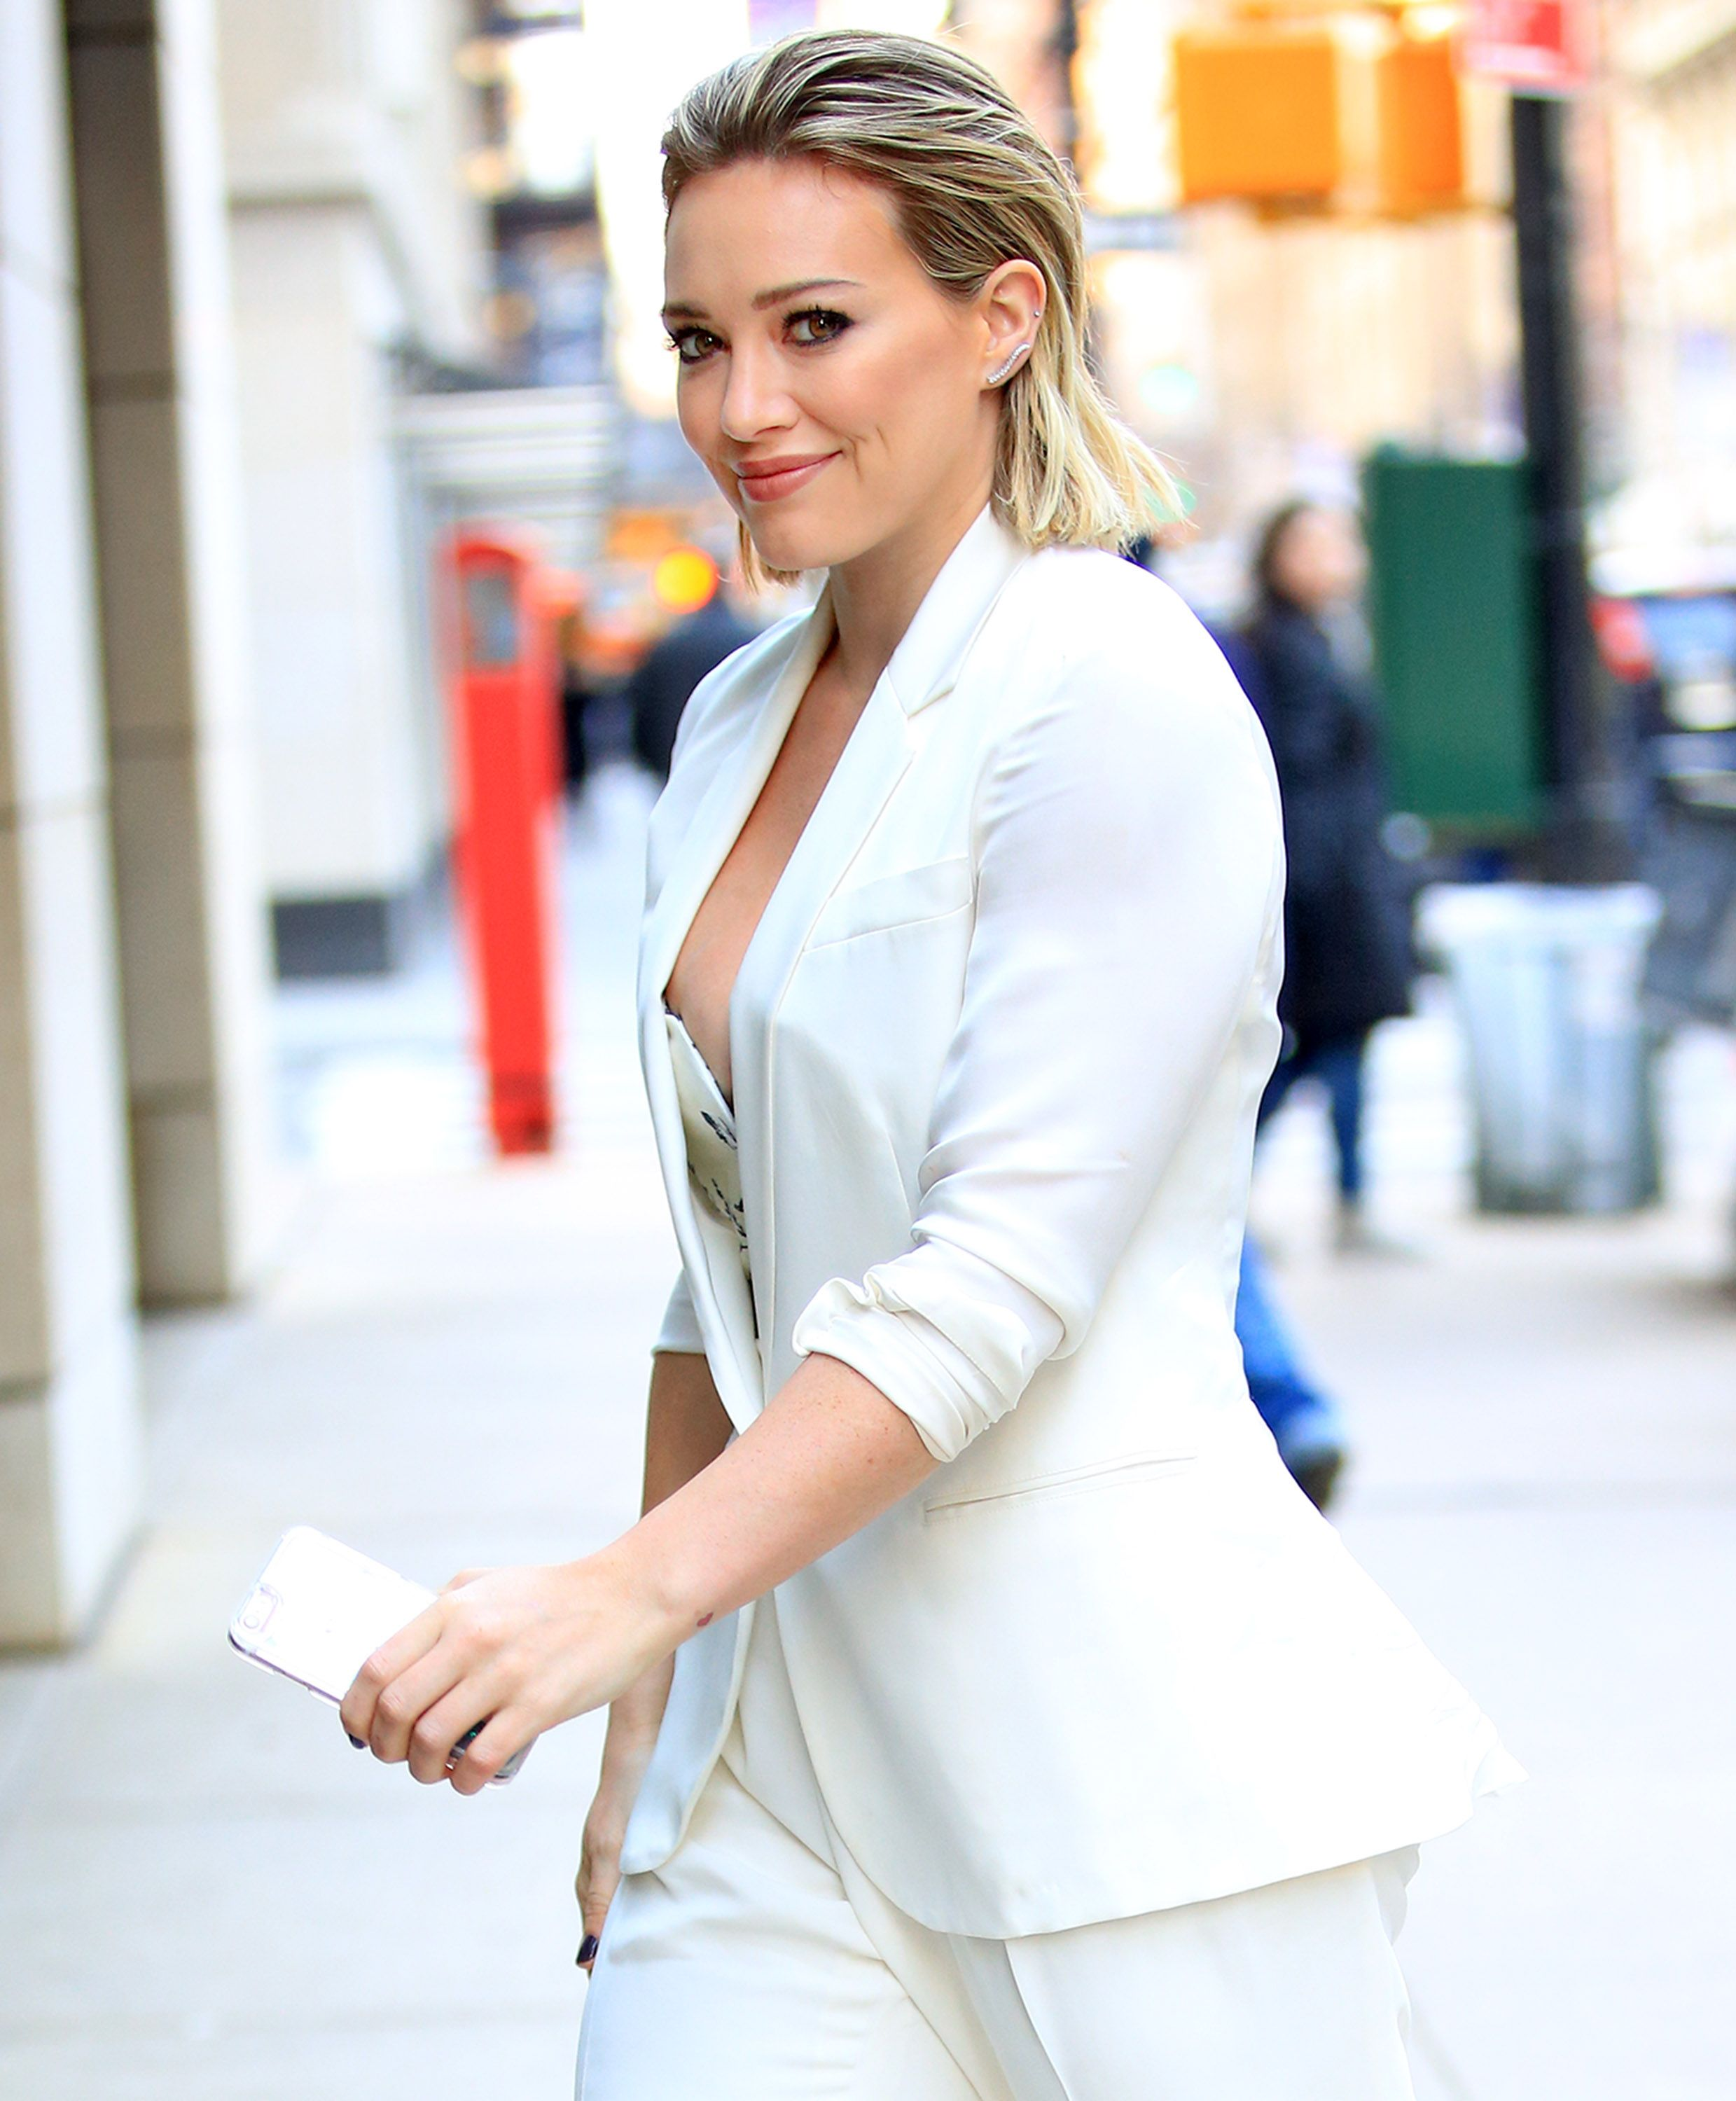 Hilary Duff Flashes Breast on Latest Episode of Younger - TV